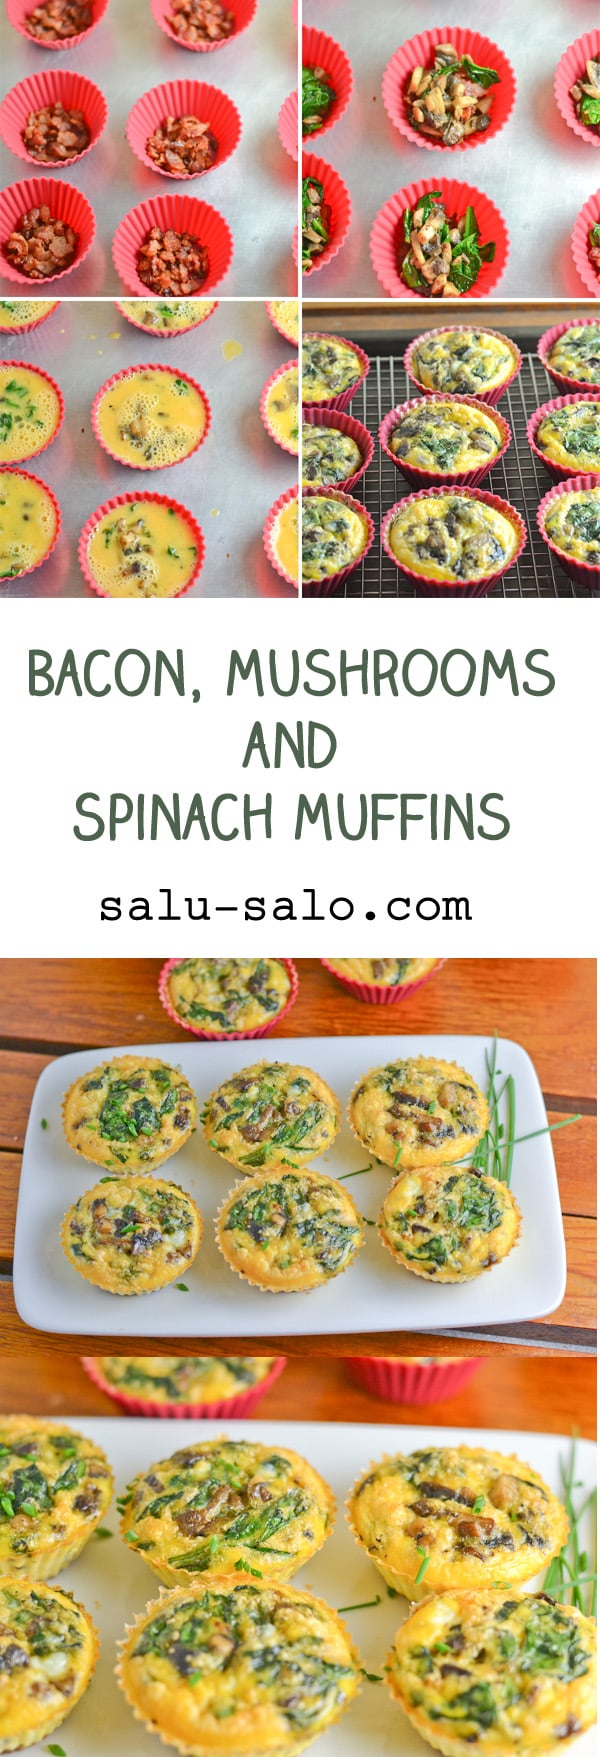 Bacon, Mushrooms and Spinach Muffins